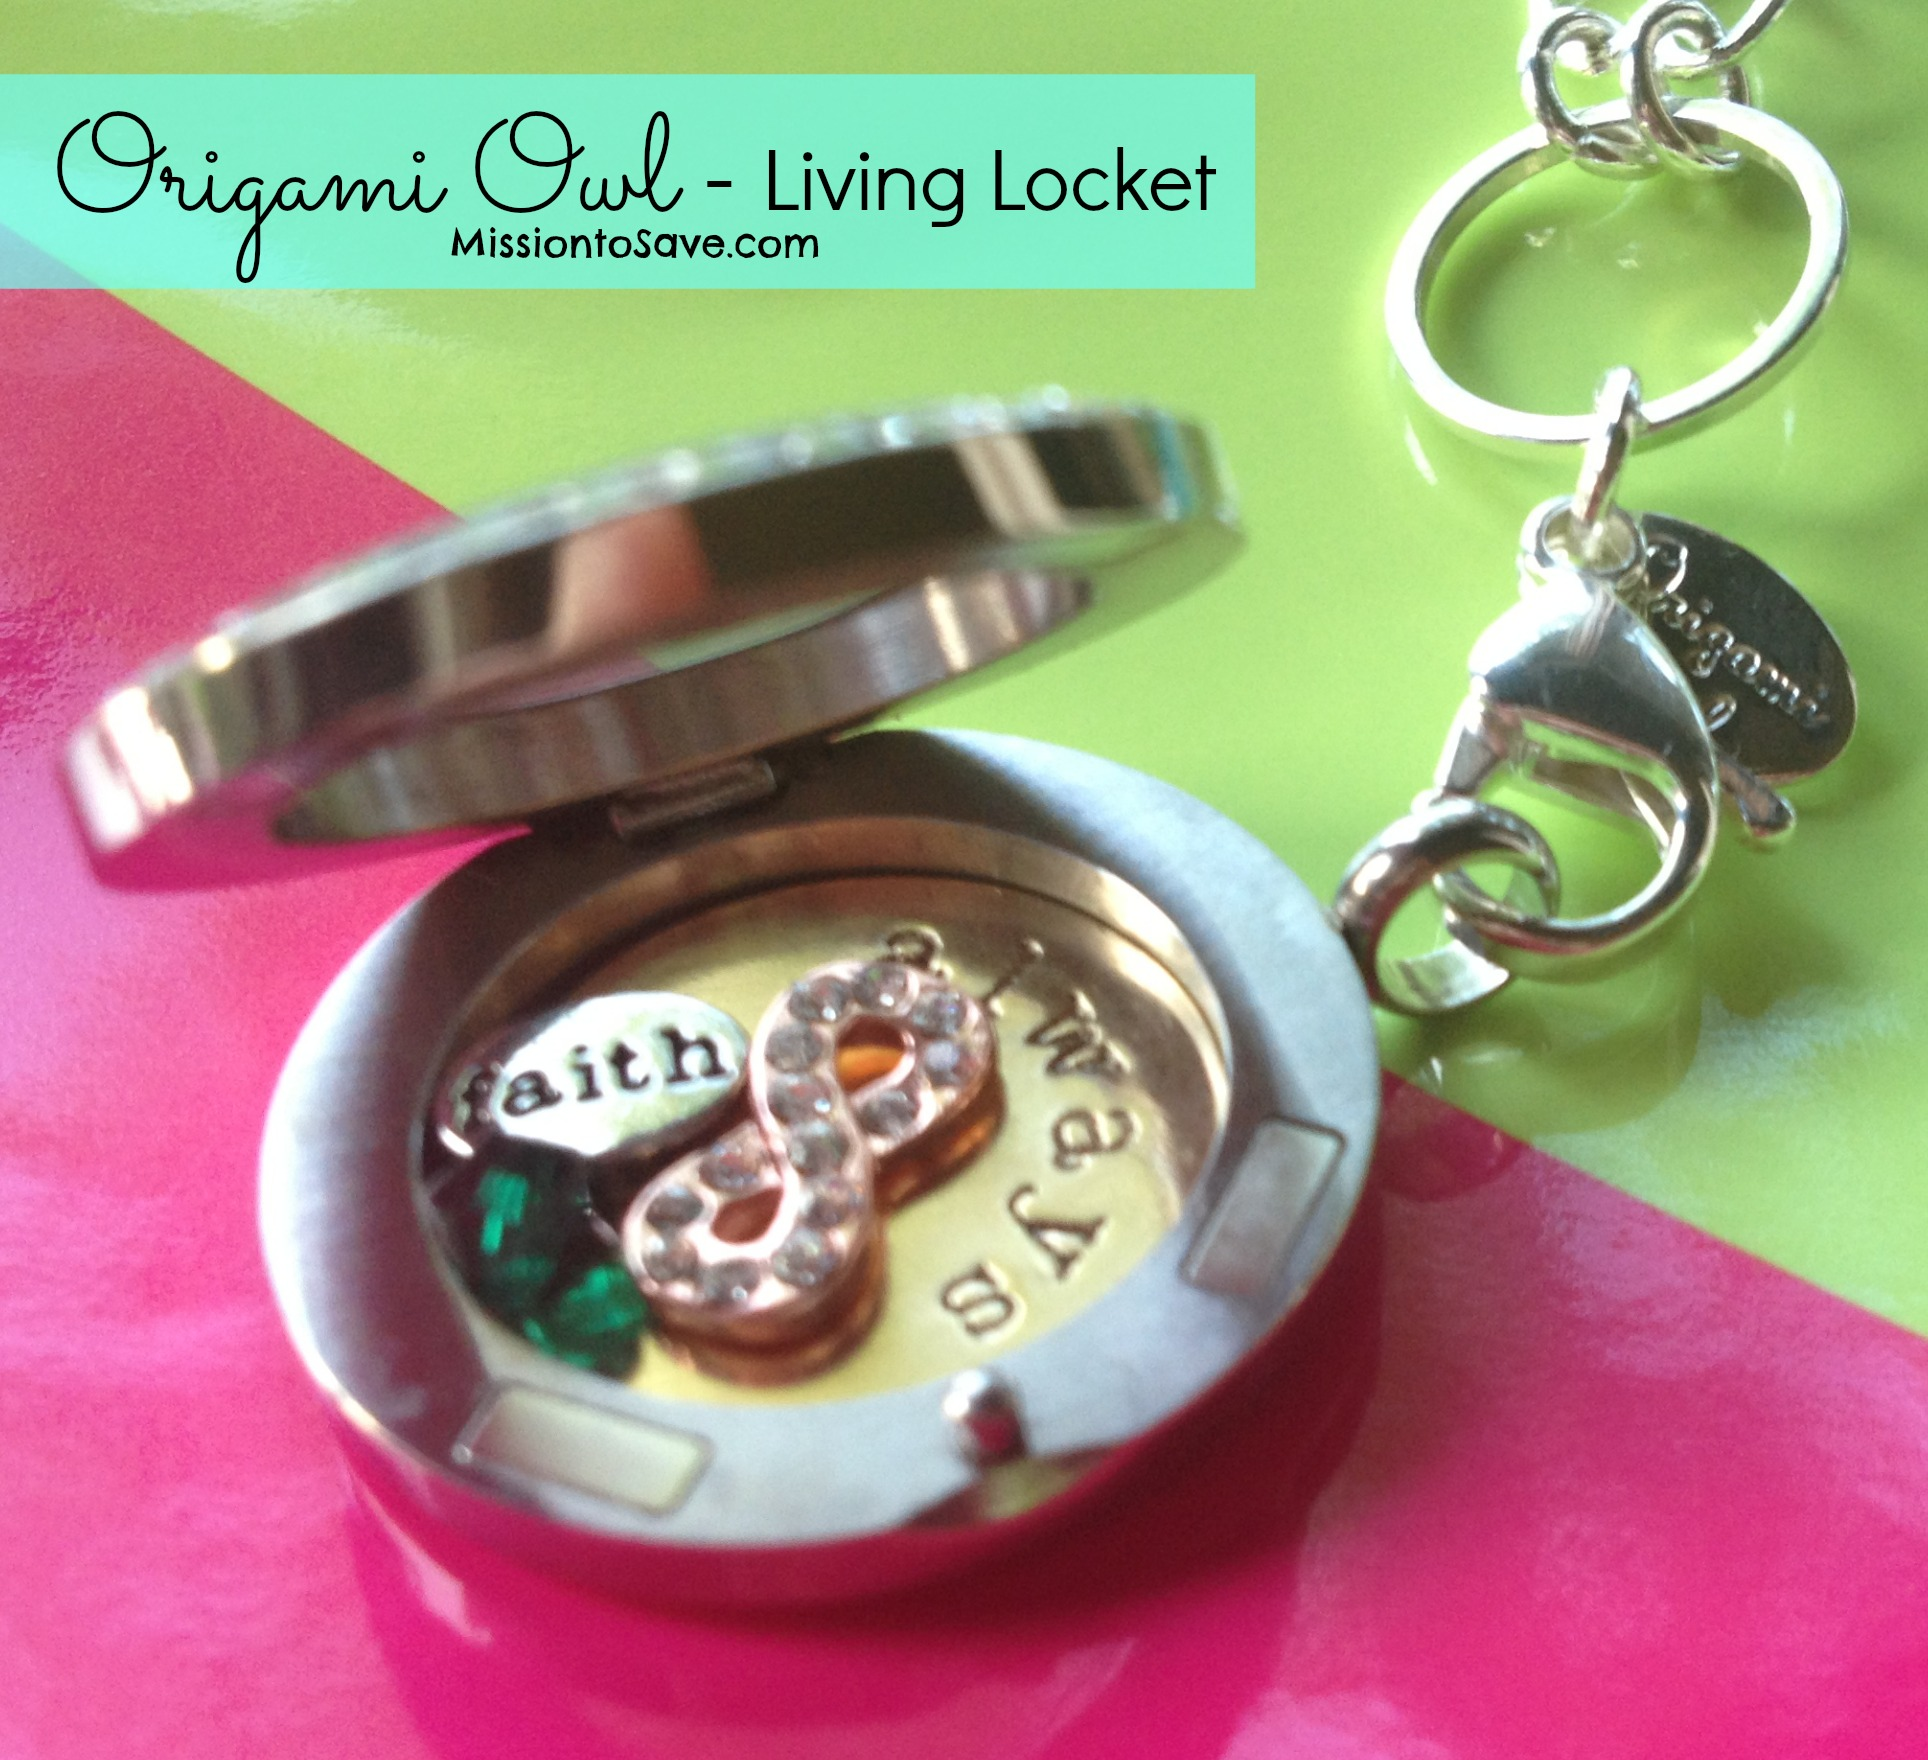 Origami owl coupon code january 2018 : Eating out deals in ... - photo#6